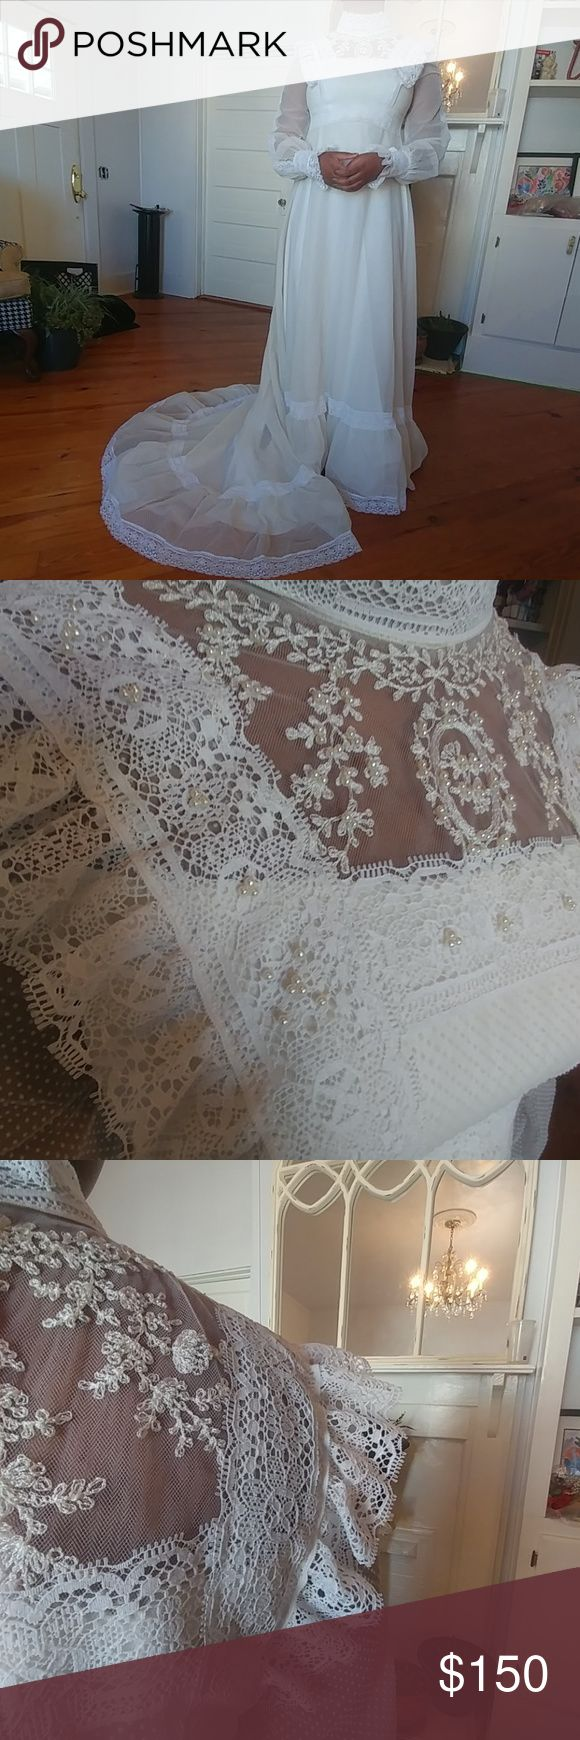 Vintage hand-sewn wedding dress & veil Seed Pearl chest. Lace. Sheer polka dot fabric. Hidden zipper back. No Label.  Size approximately extra small.  Measures approximately 17 inch from underarm to underarm.  Waistline measures approximately 14 in flat.  Hips measure approximately 22 in flat. Length measures approximately 60 inches from shoulder to front hemline line. Excellent condition! Vintage Dresses